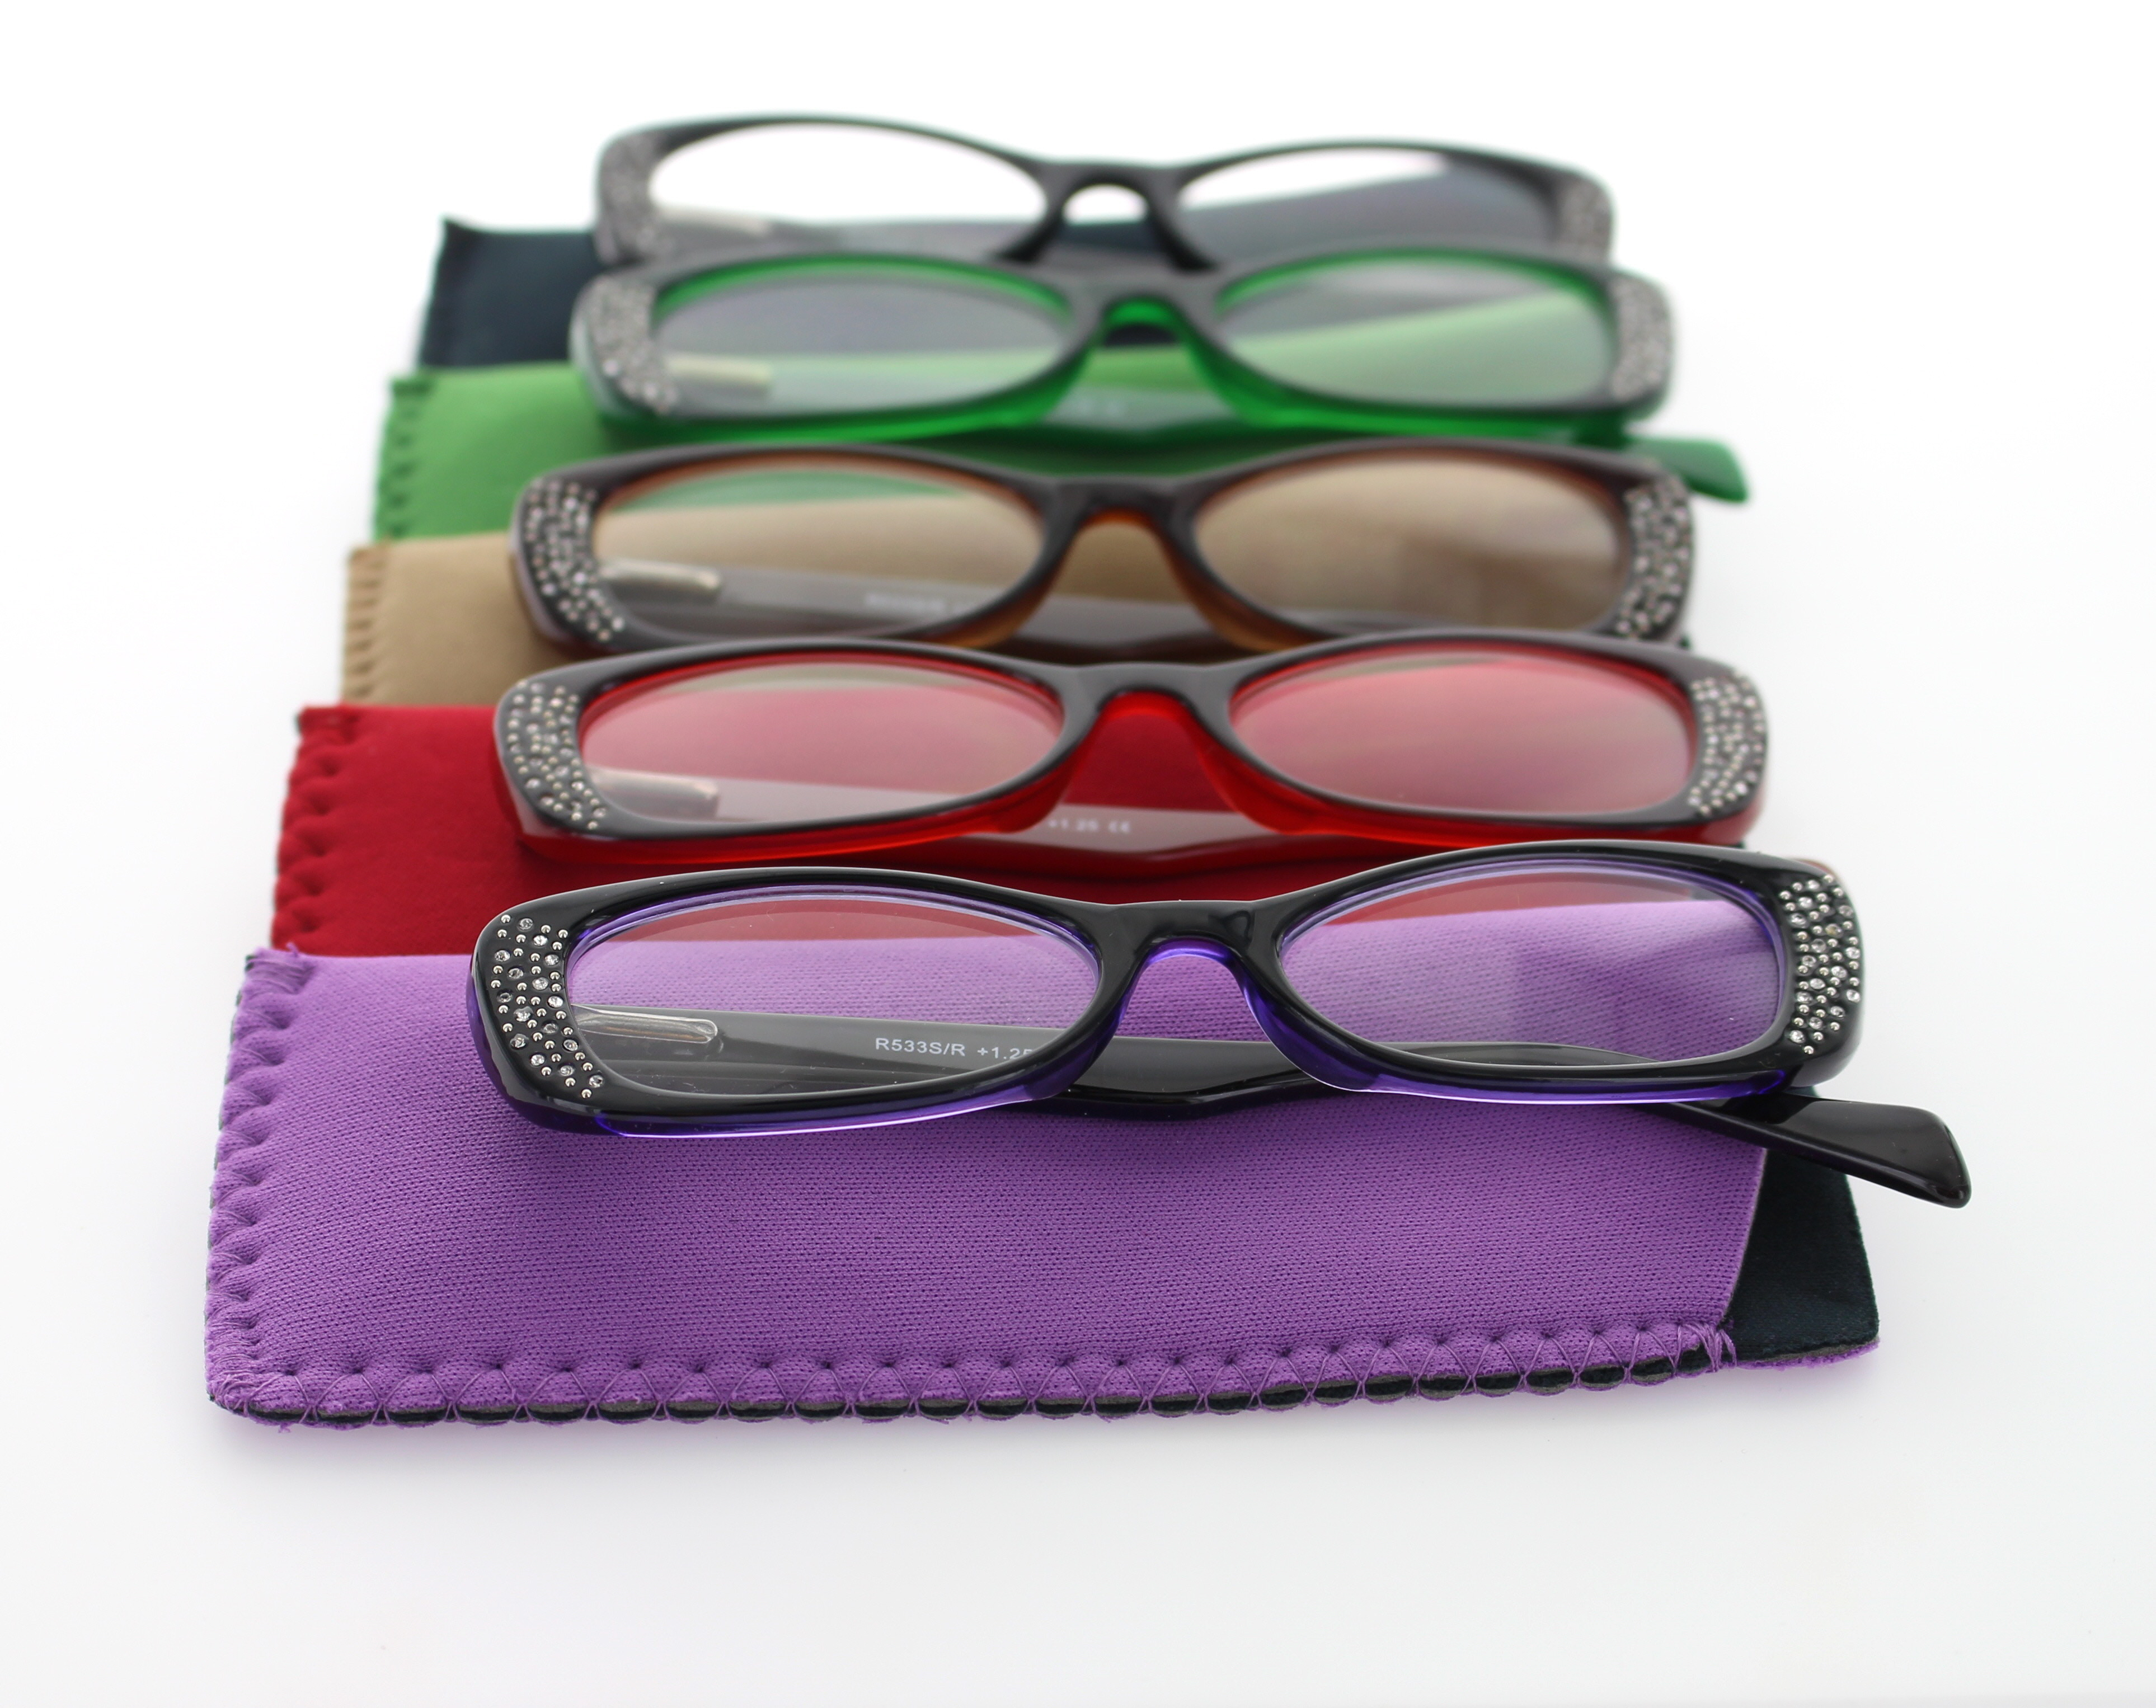 82f4a34f249 Reading Glasses Products - Page 3 of 3 - Best of Everything